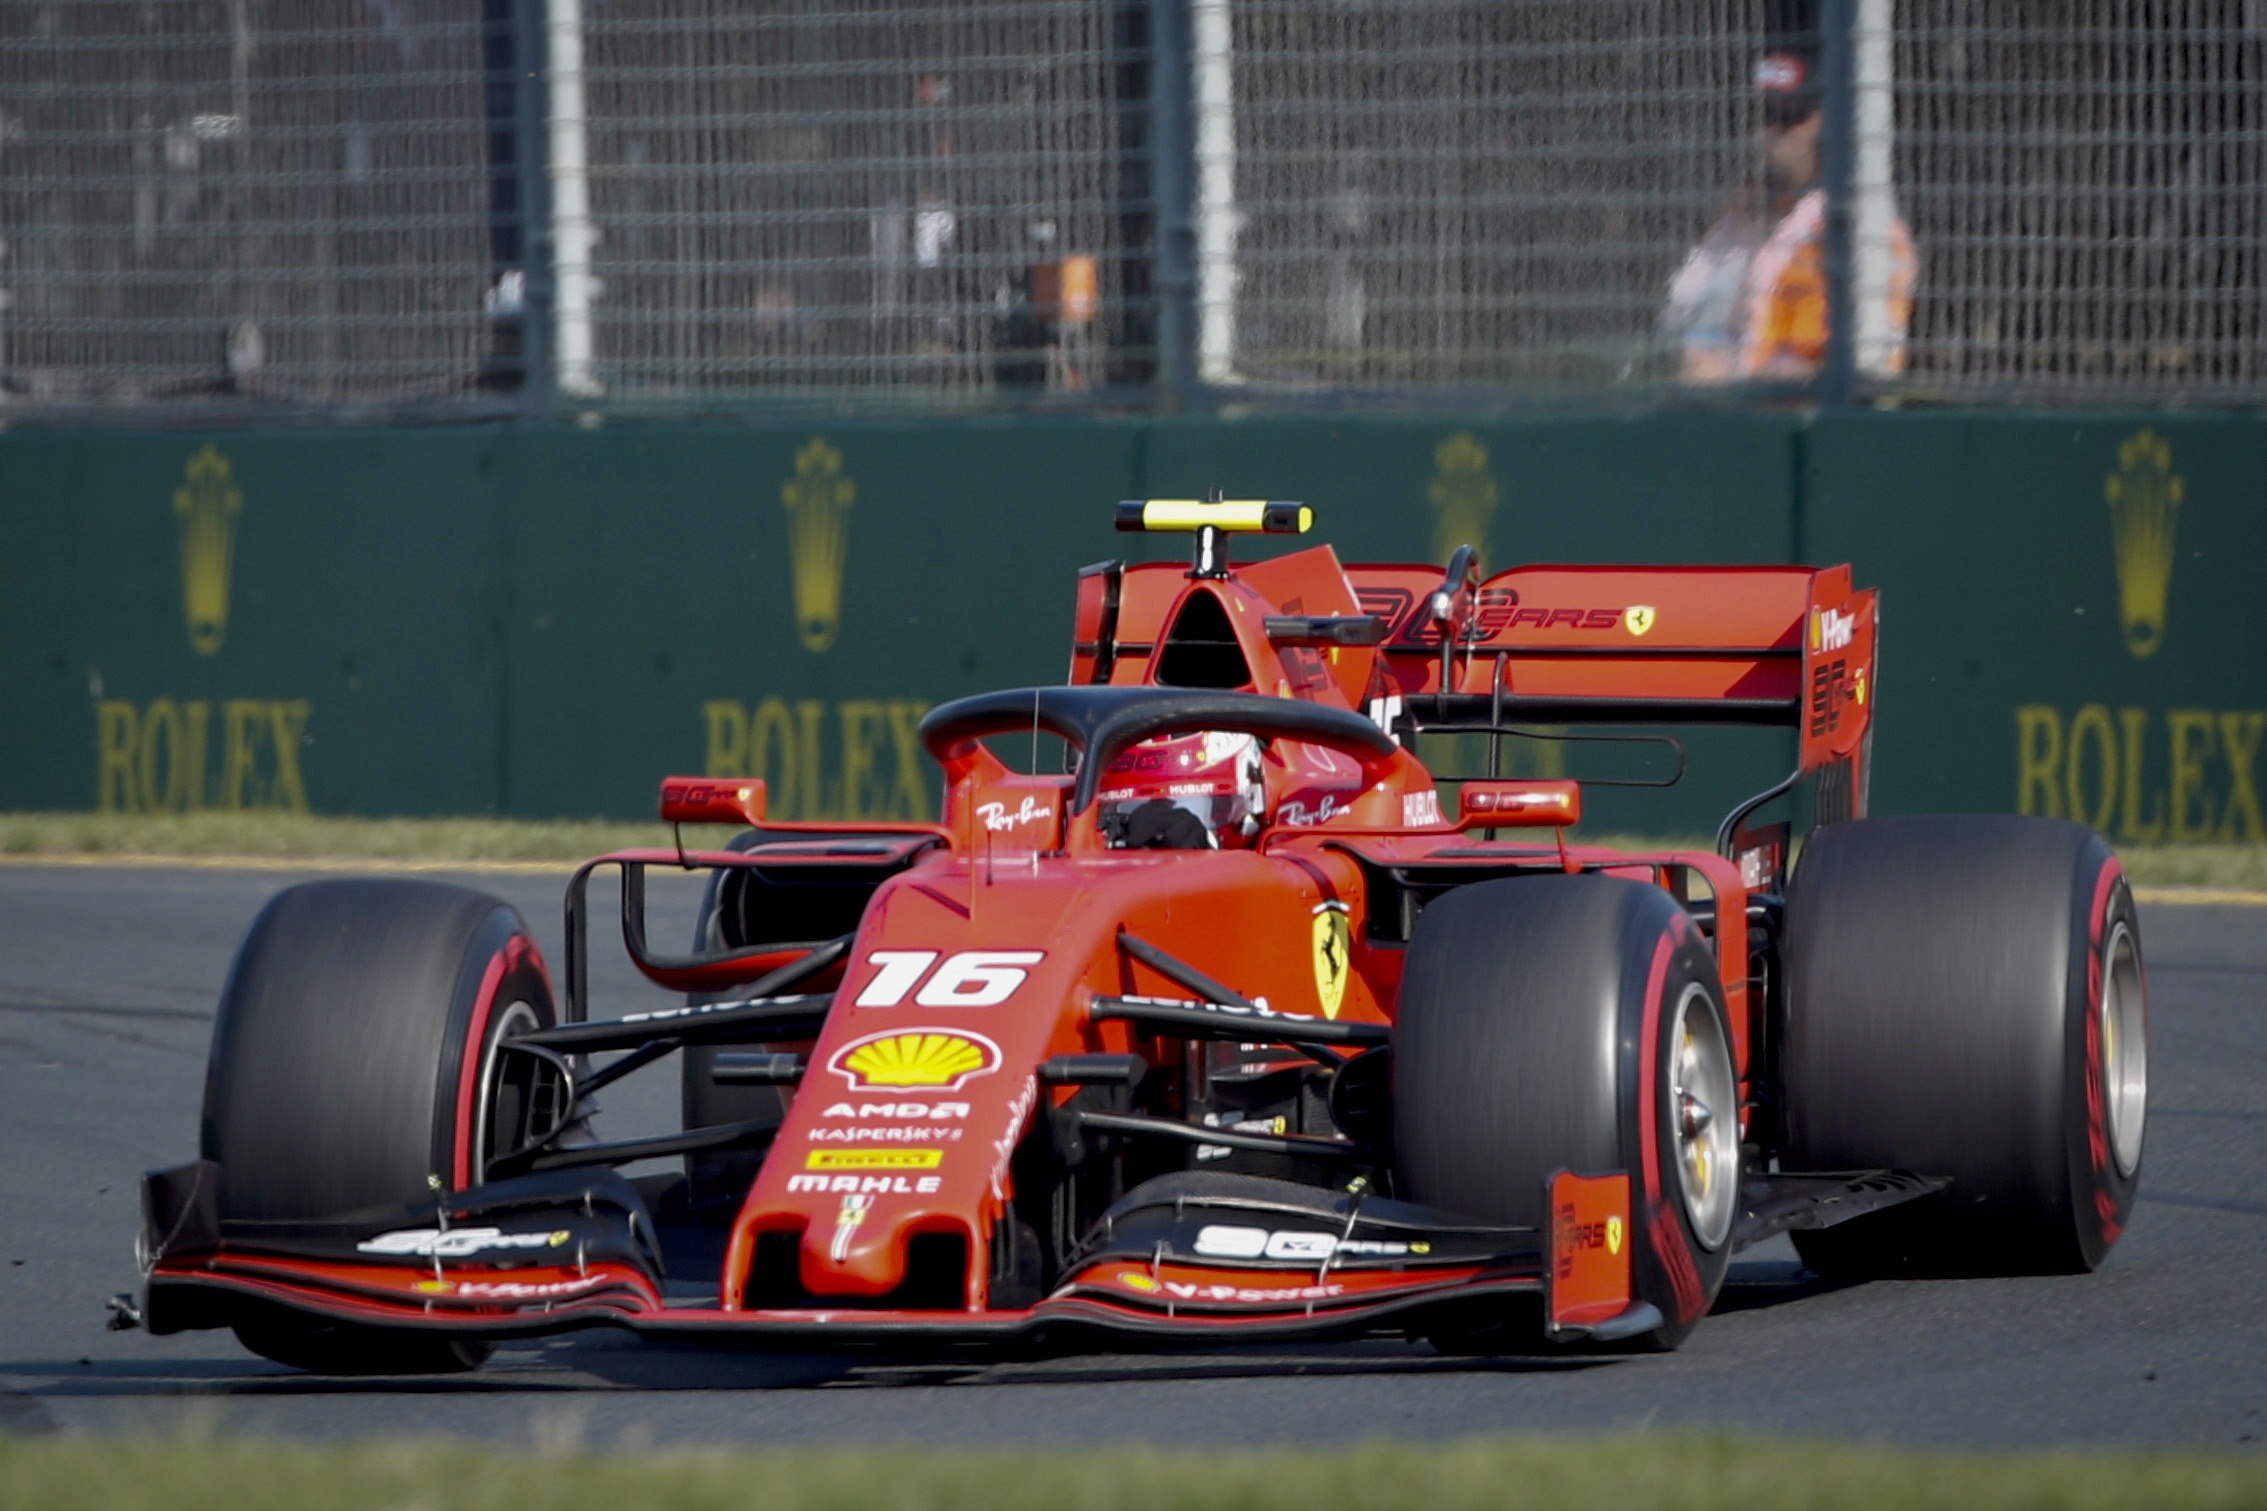 EFE/EPA/DIEGO AZUBEL. ZSN095. Melbourne (Australia), 17/03/2019.- Monaco's Formula One driver Charles Leclerc of Scuderia Ferrari in action during the 2019 Formula One Grand Prix of Australia at the Albert Park Grand Prix Circuit in Melbourne, Australia, 17 March 2019. (Fórmula Uno)